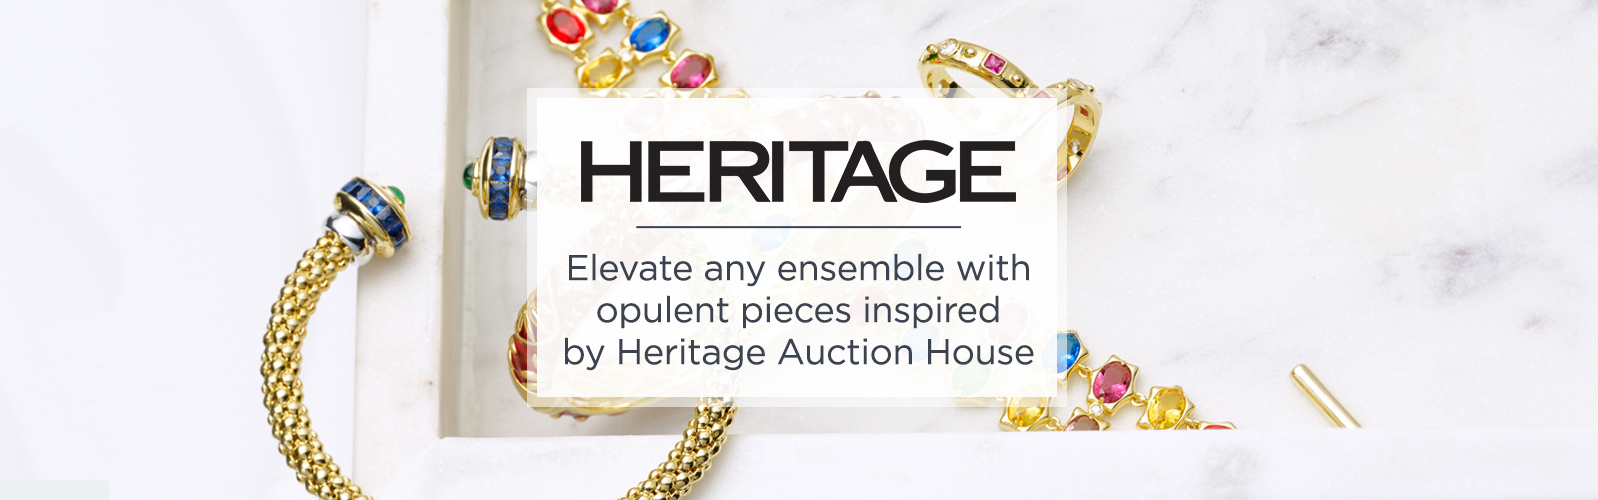 Heritage. Elevate any ensemble with opulent pieces inspired by Heritage Auction House